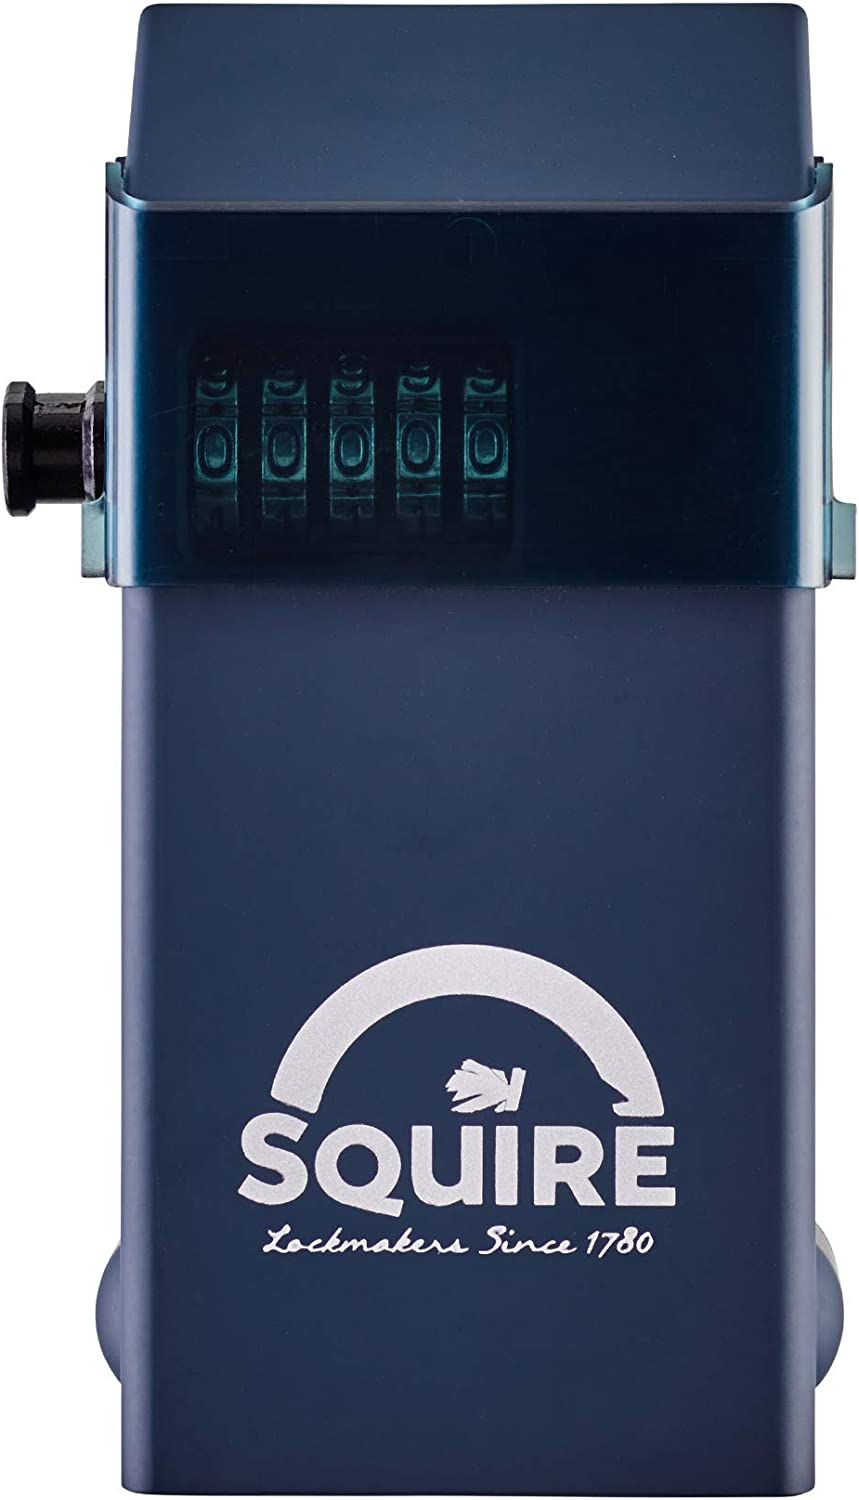 Squire Key Safe. High Security Key Lock Box for Internal and External Use. Weatherproof Wall-mounted Recodable Key Storage Box (Stronghold Keysafe)